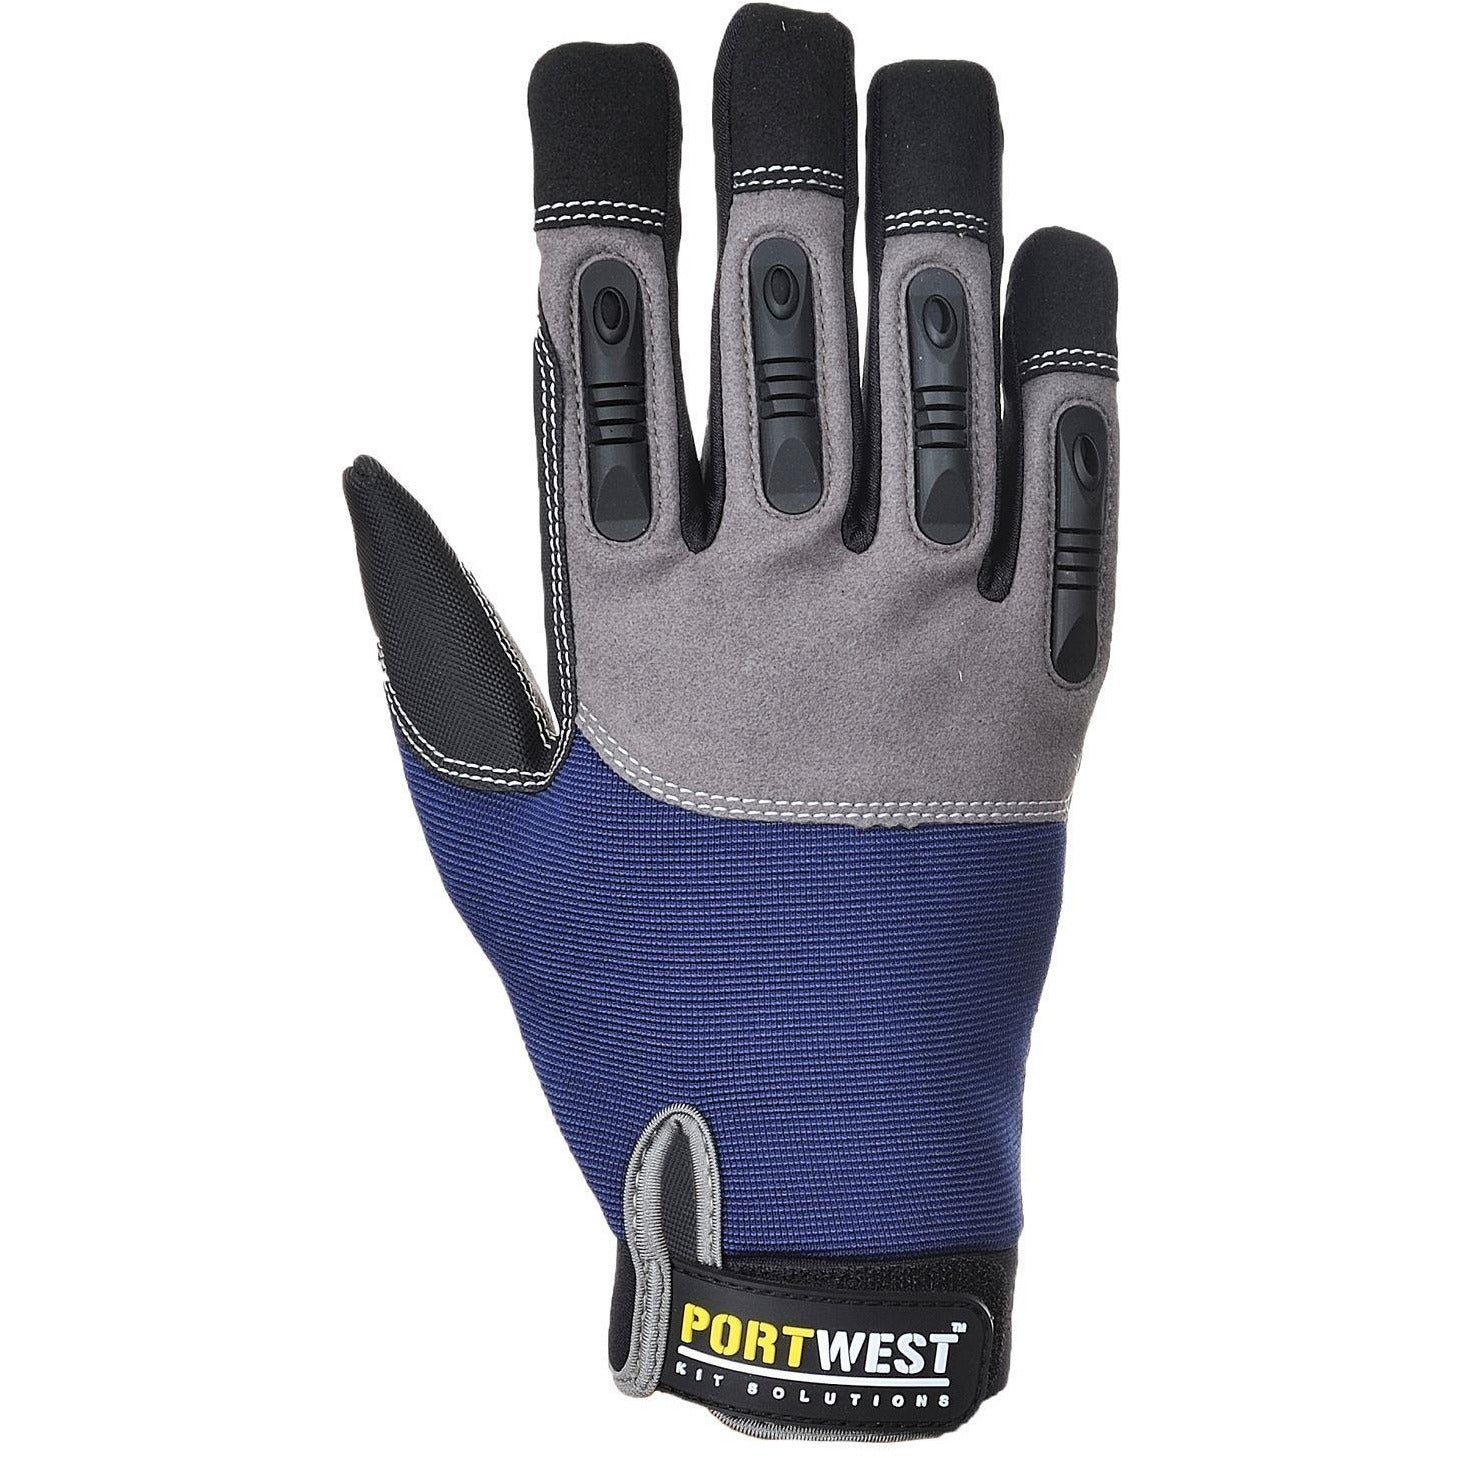 Portwest Impact - High Performance Glove